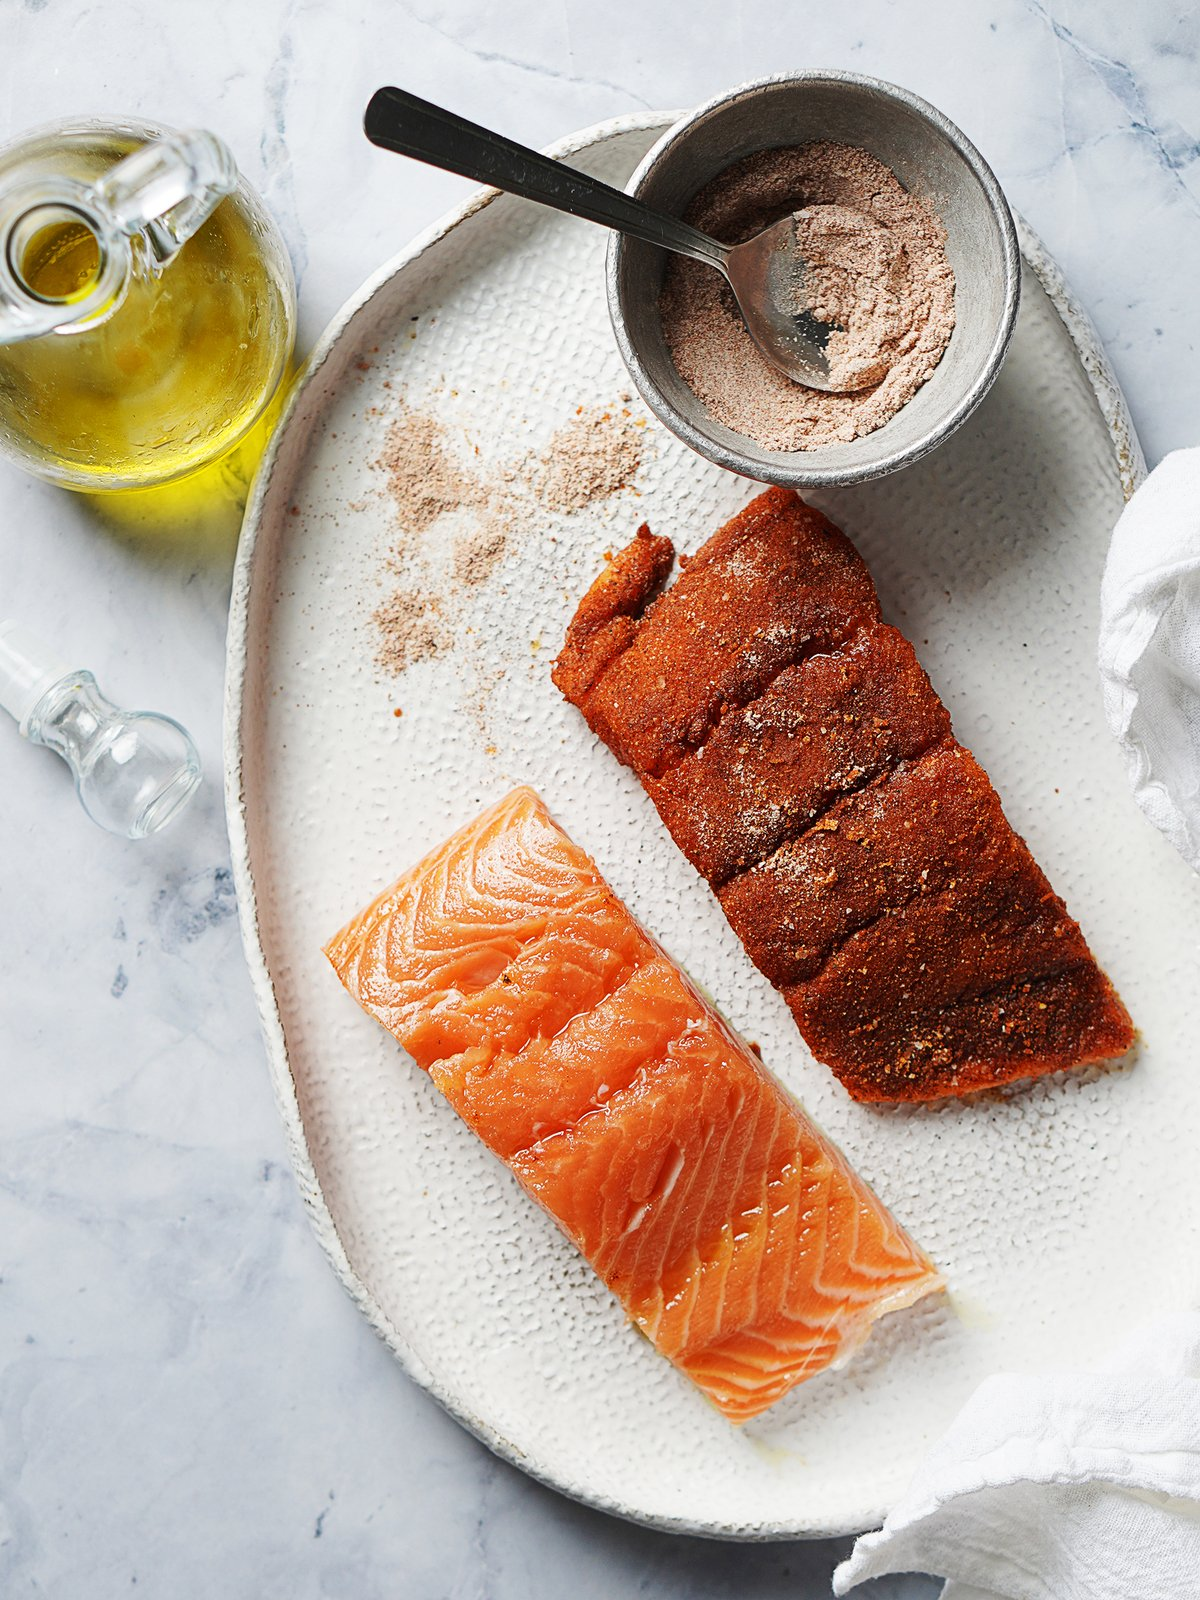 Two pieces of salmon: one with the spice rub and one without.